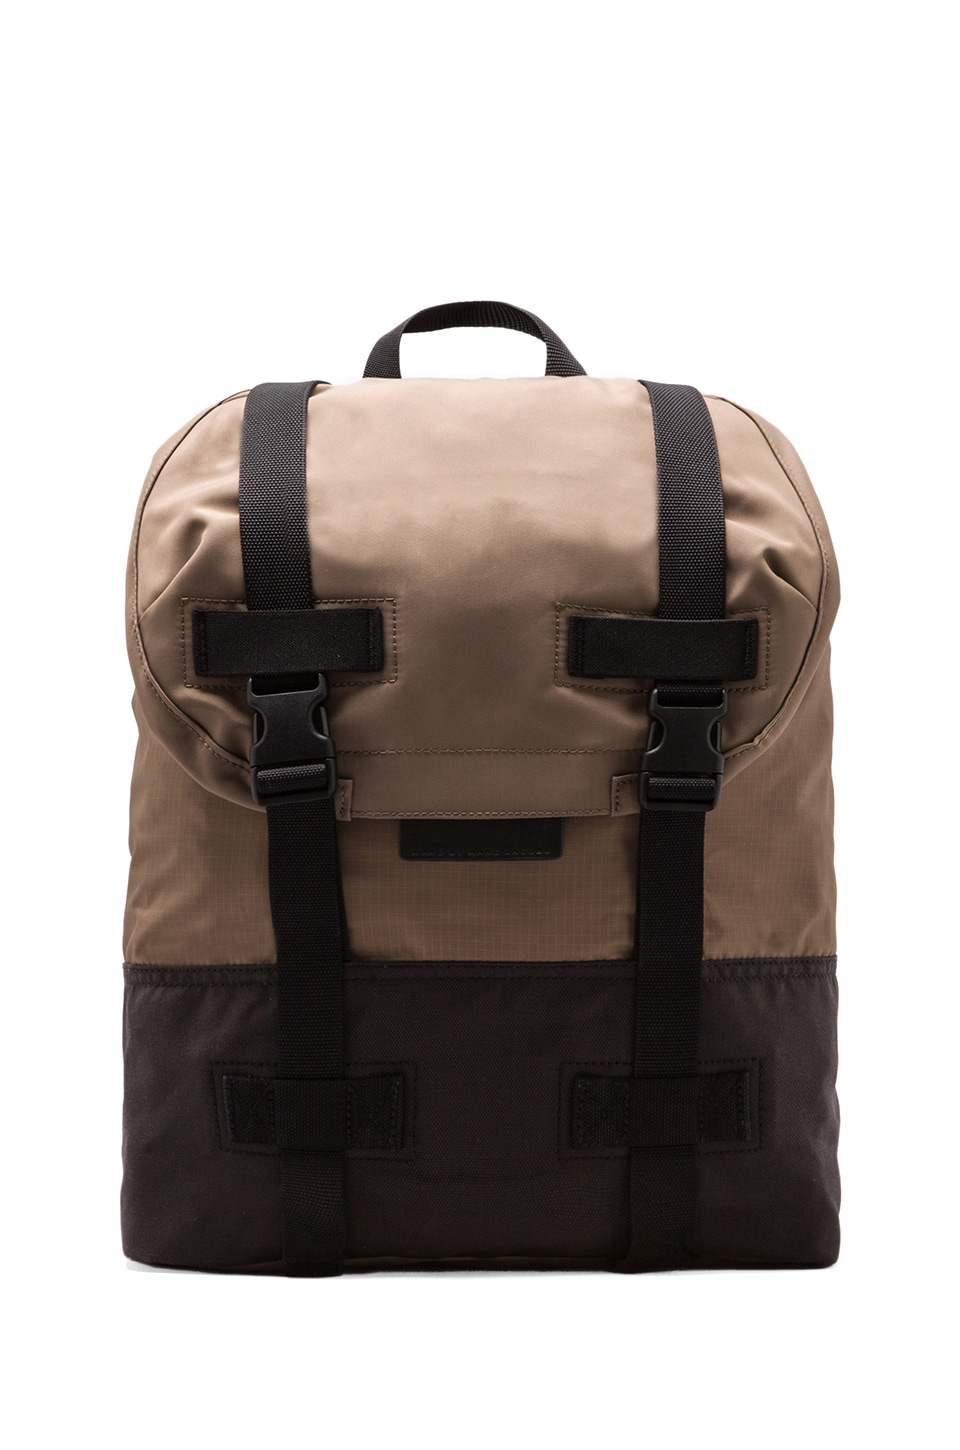 Marc by Marc Jacobs Sam's Backpack in Waxed Khaki